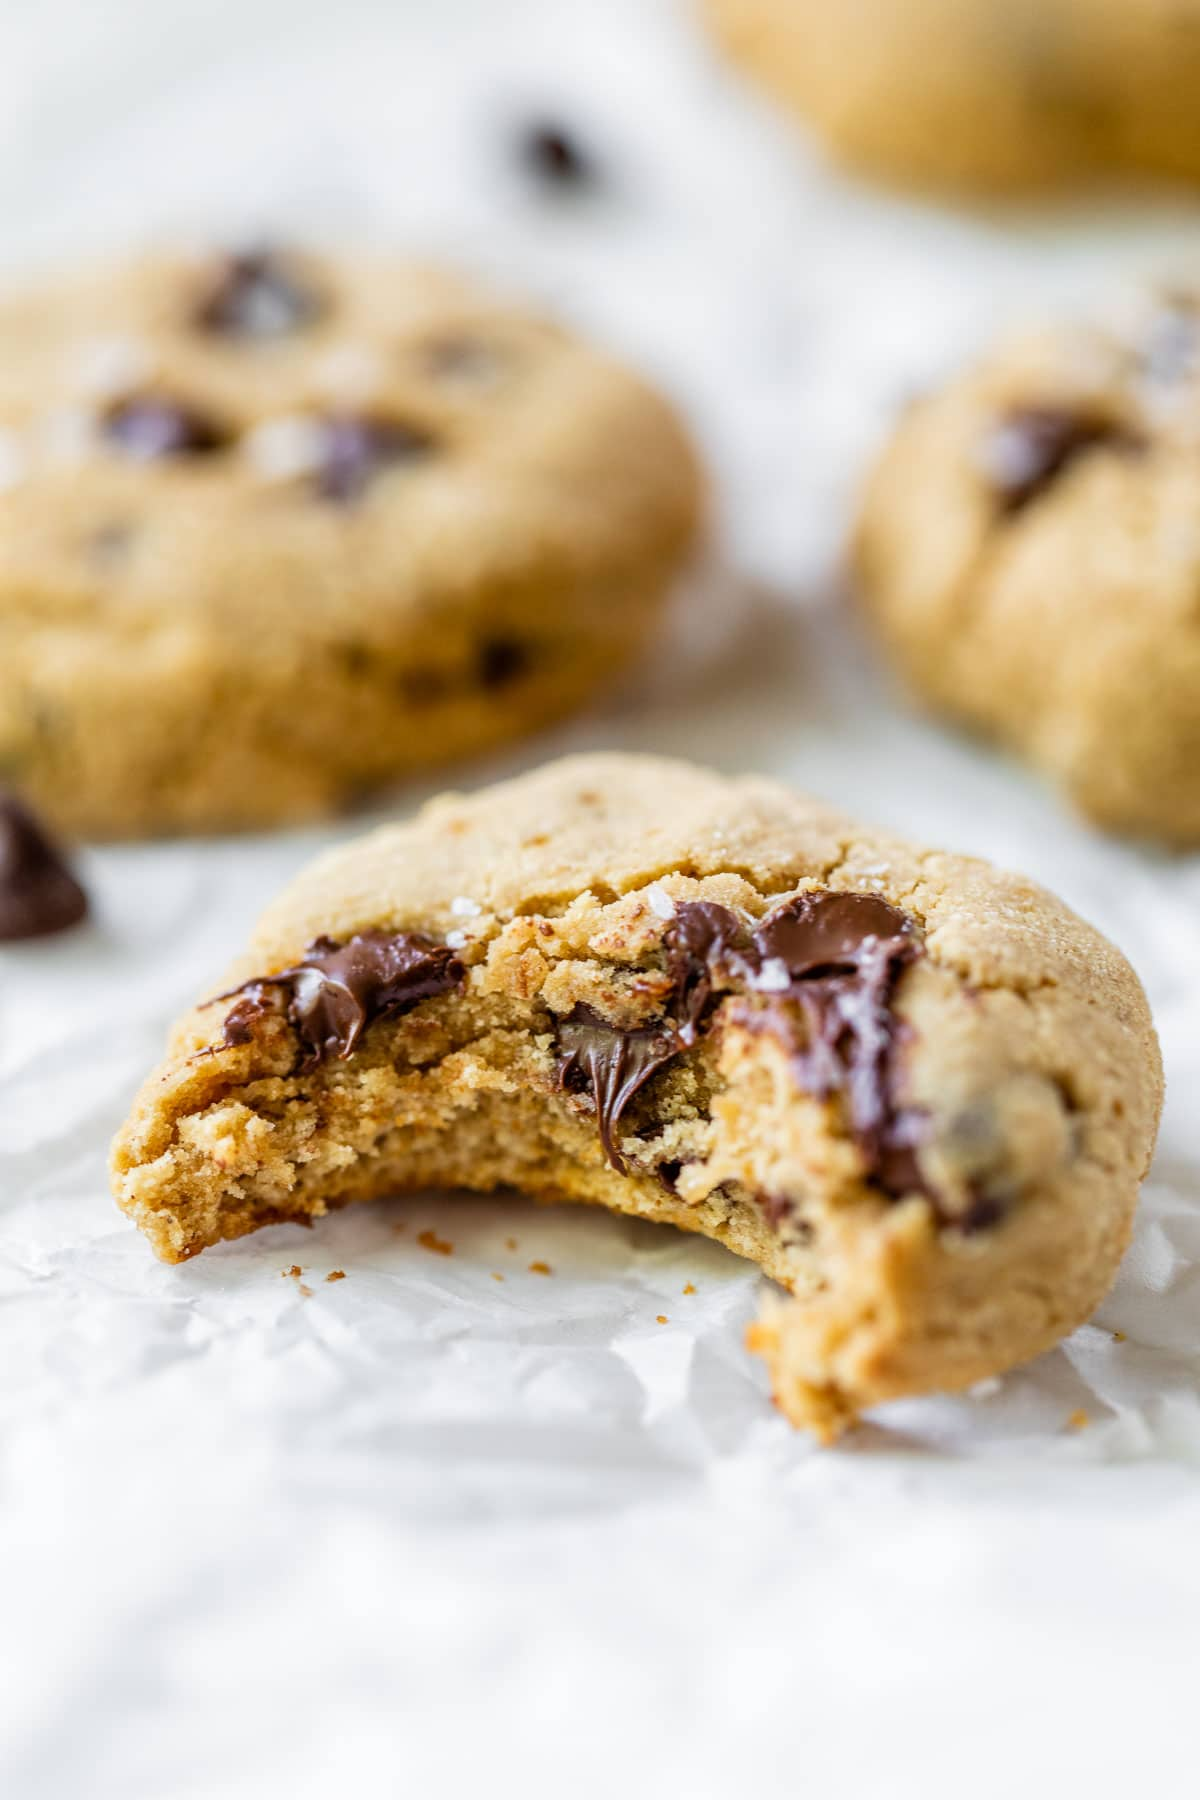 a chocolate chip cookies with a bite taken out of it